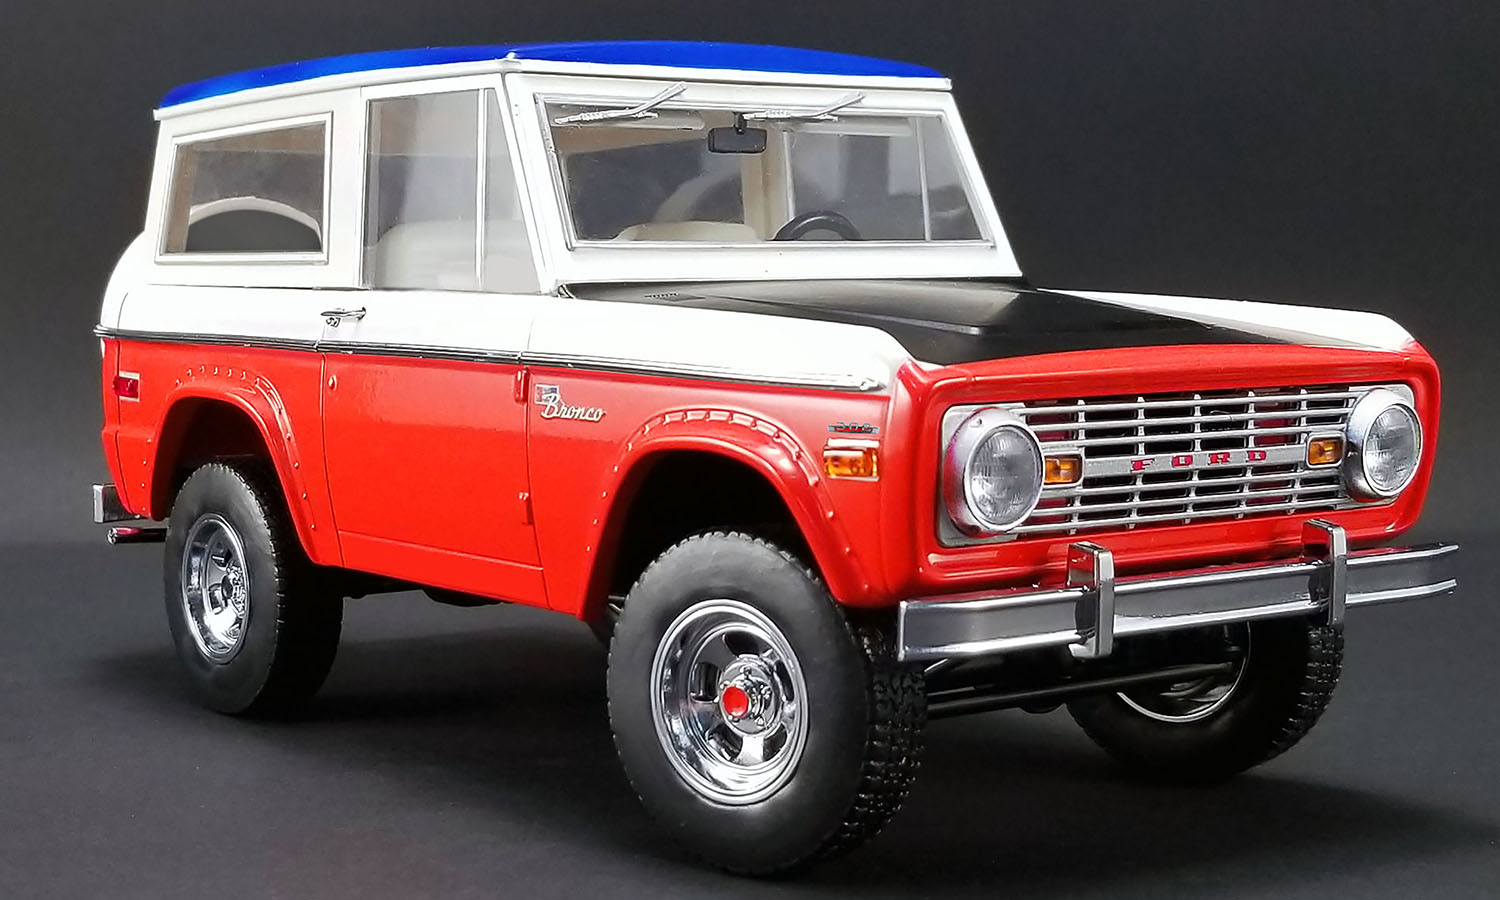 ACME 1:18 1971年モデル フォード ブロンコ1971 FORD BRONCO - BILL STROPPE BAJA EDITION 1/18 by ACME